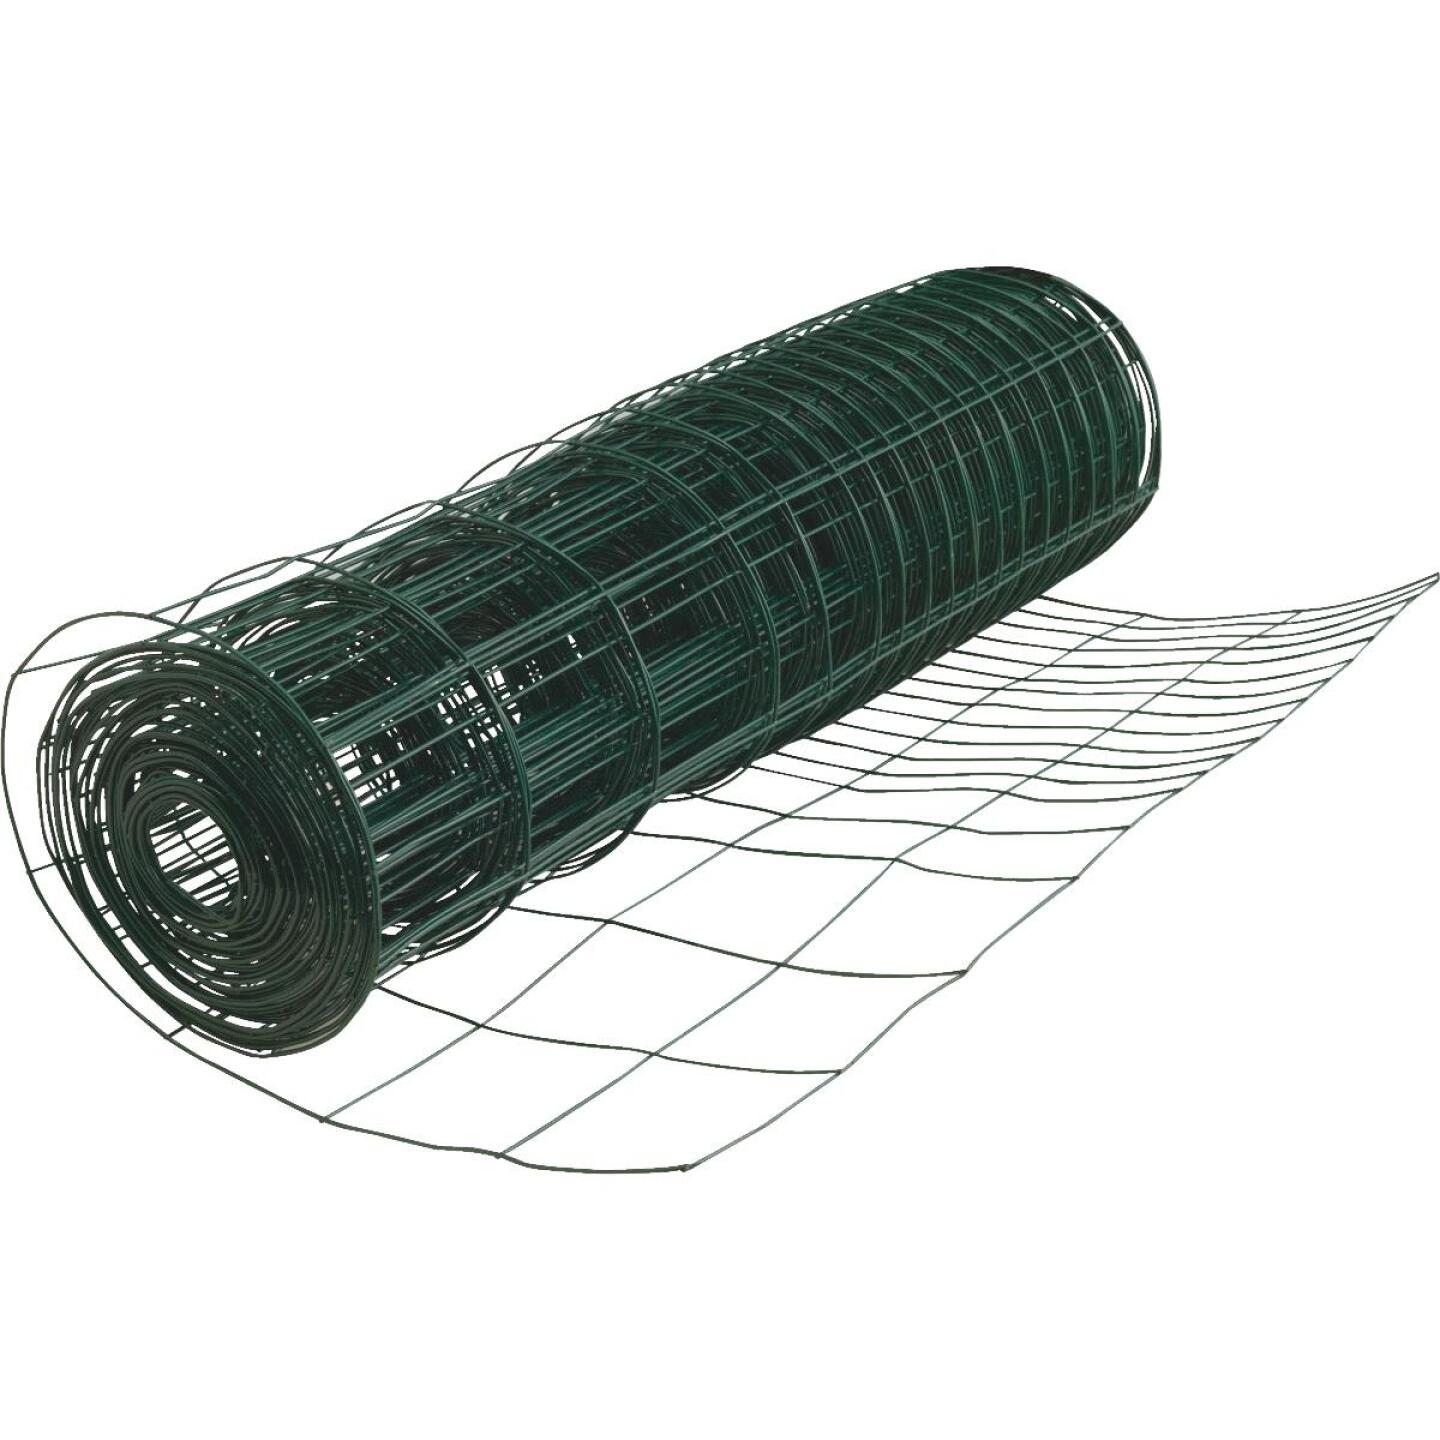 Do it 28 In. H. x 50 Ft. L. Galvanized Wire Garden Fence, Green Image 1